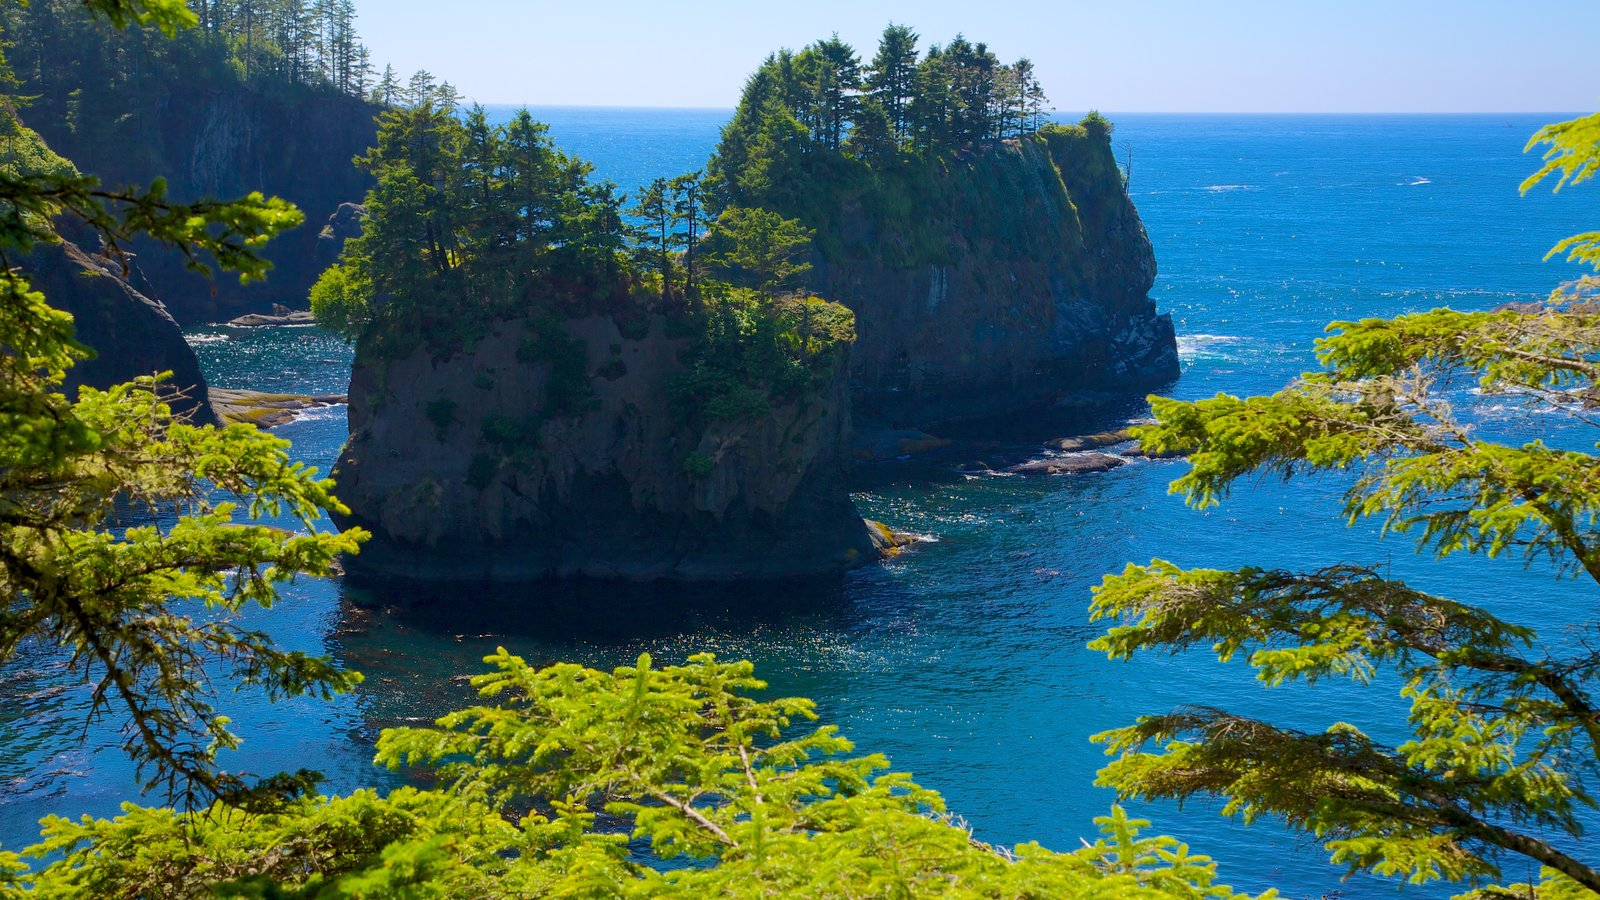 Cape Flattery featuring a bay or harbor, forest scenes and landscape views